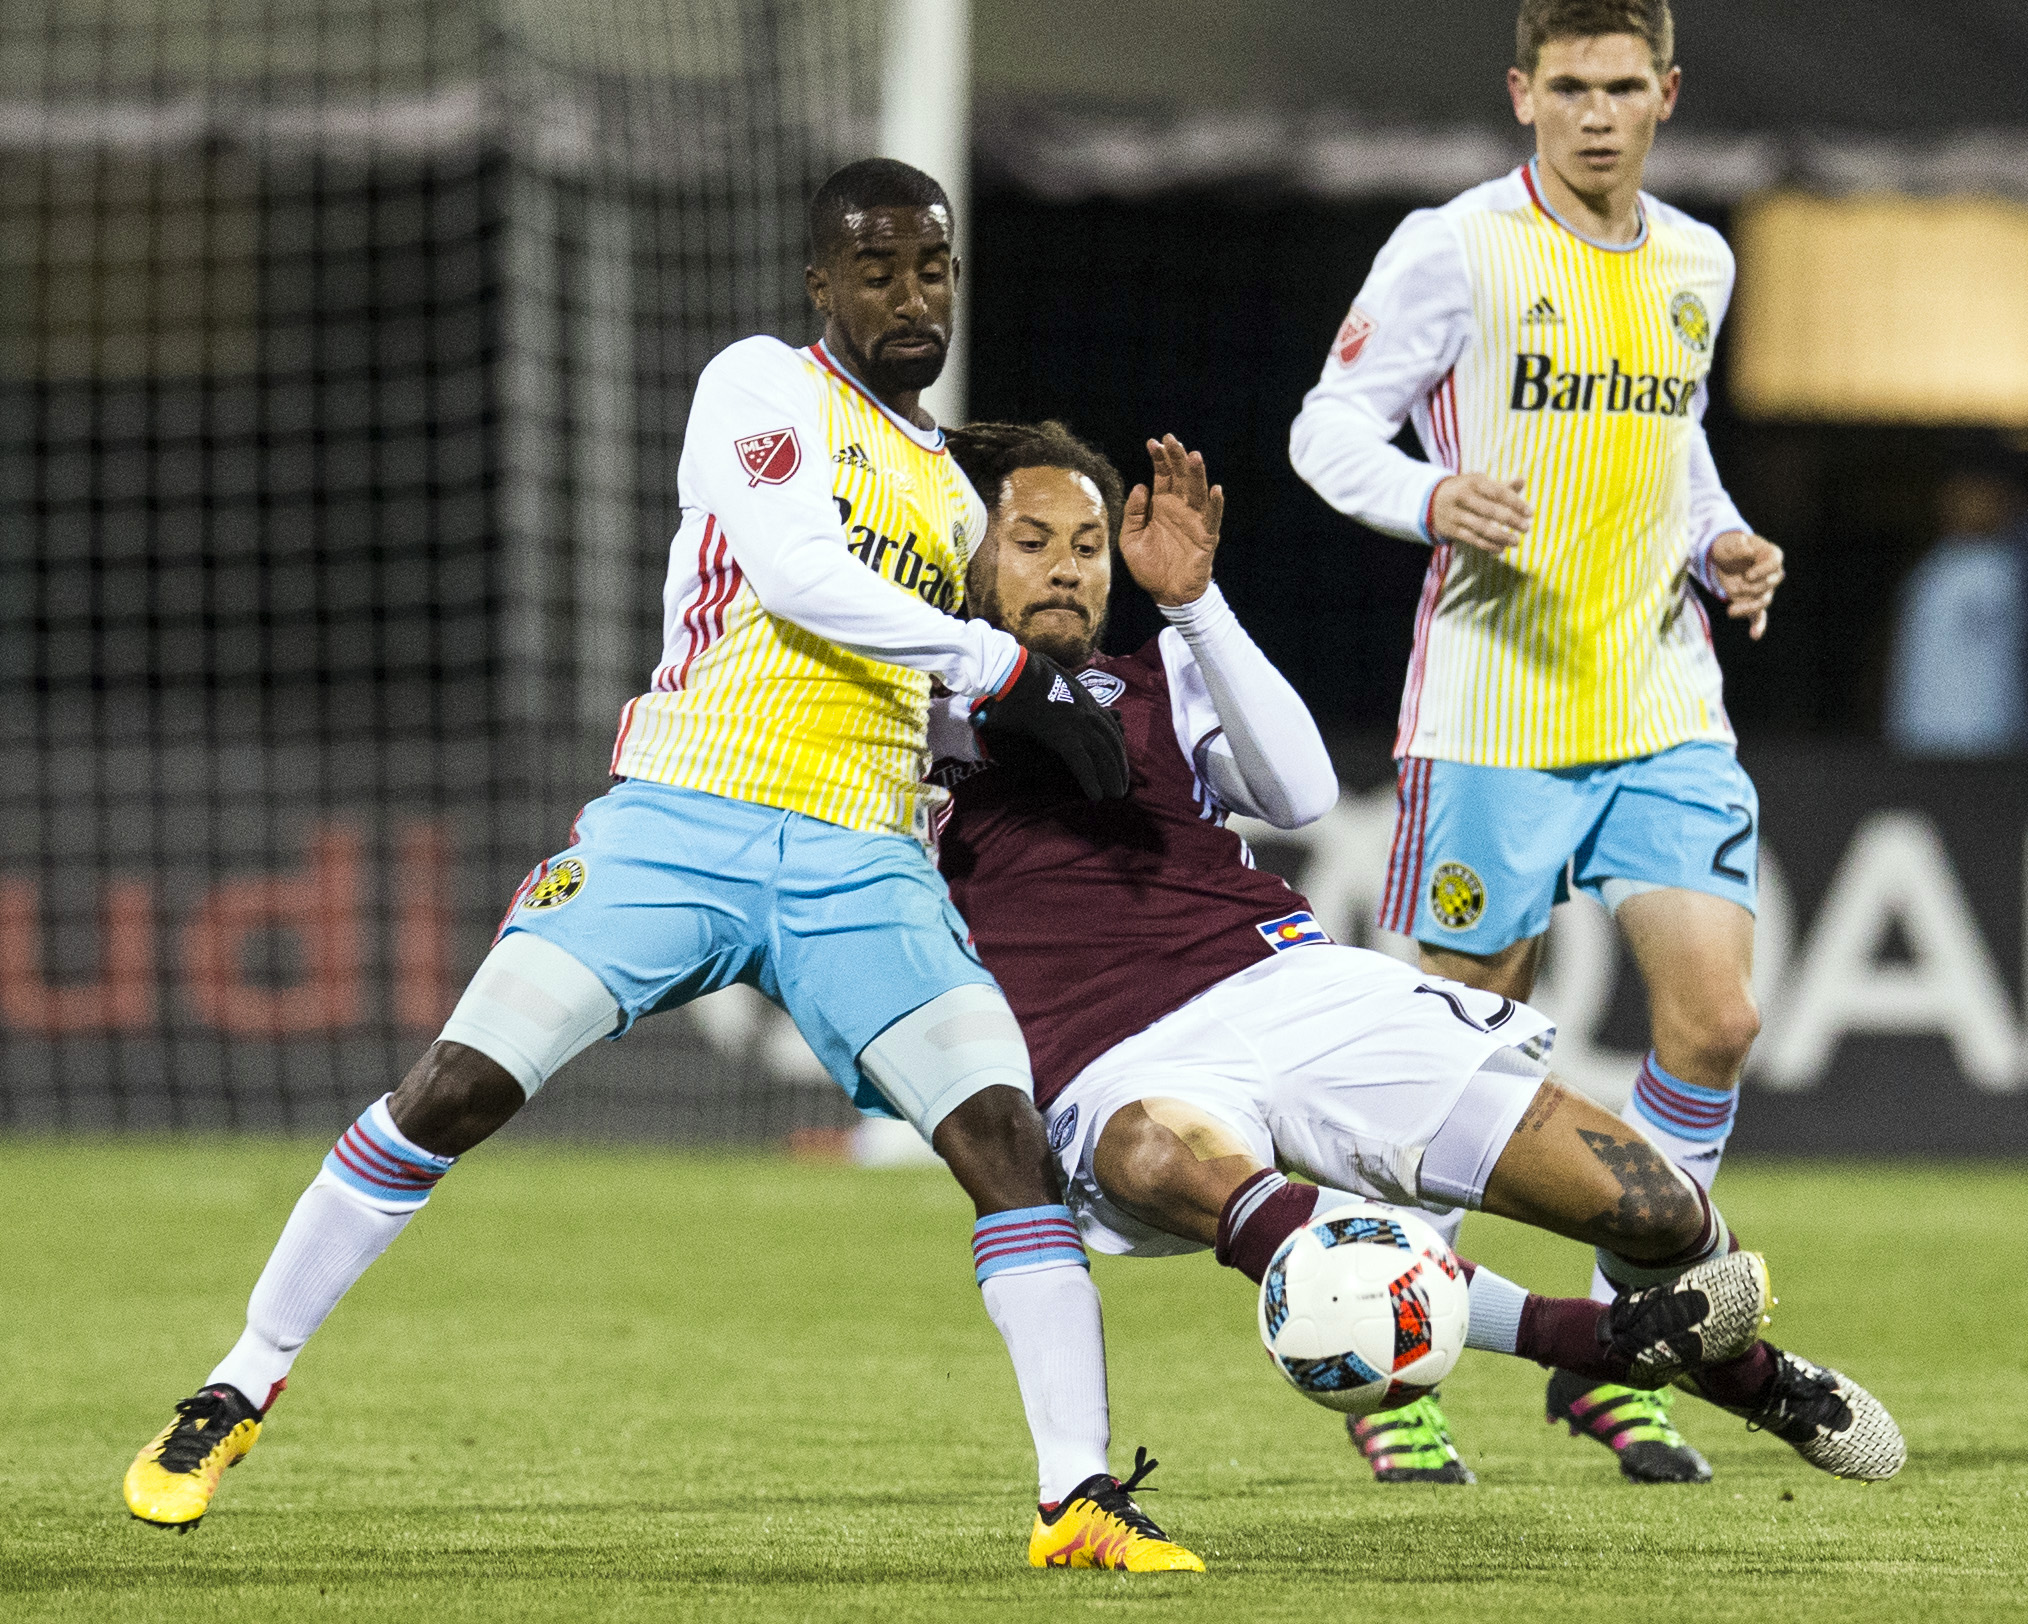 Jermaine Jones going down low to tack the ball away in the Rapids match vs Columbus Crew SC.